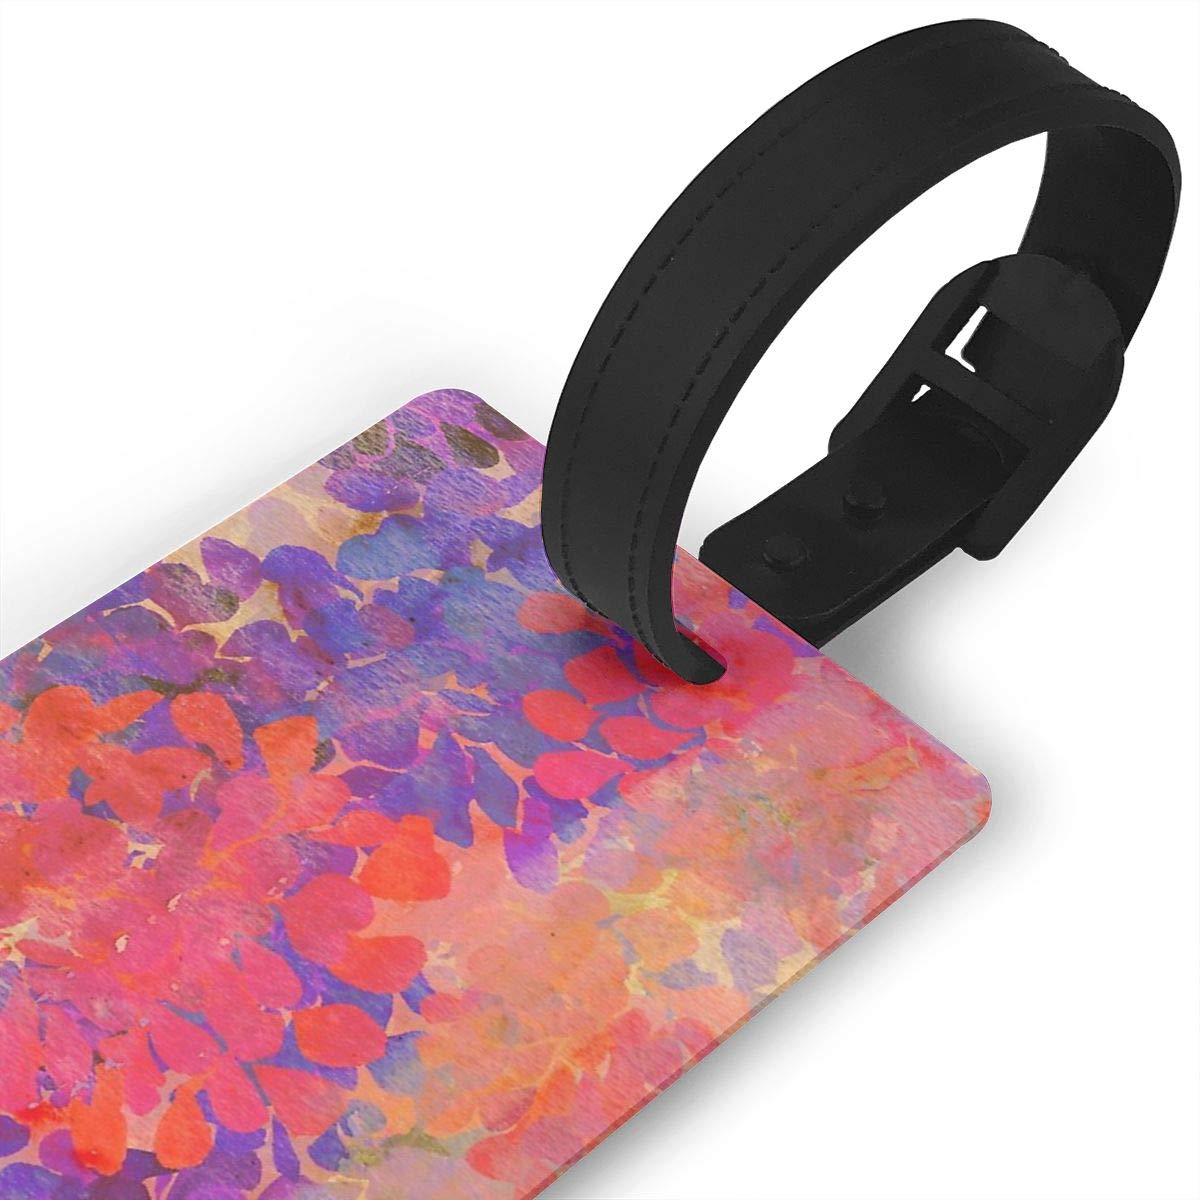 Set of 2 Floral Composition Luggage Tags Suitcase Labels Bag Travel Accessories